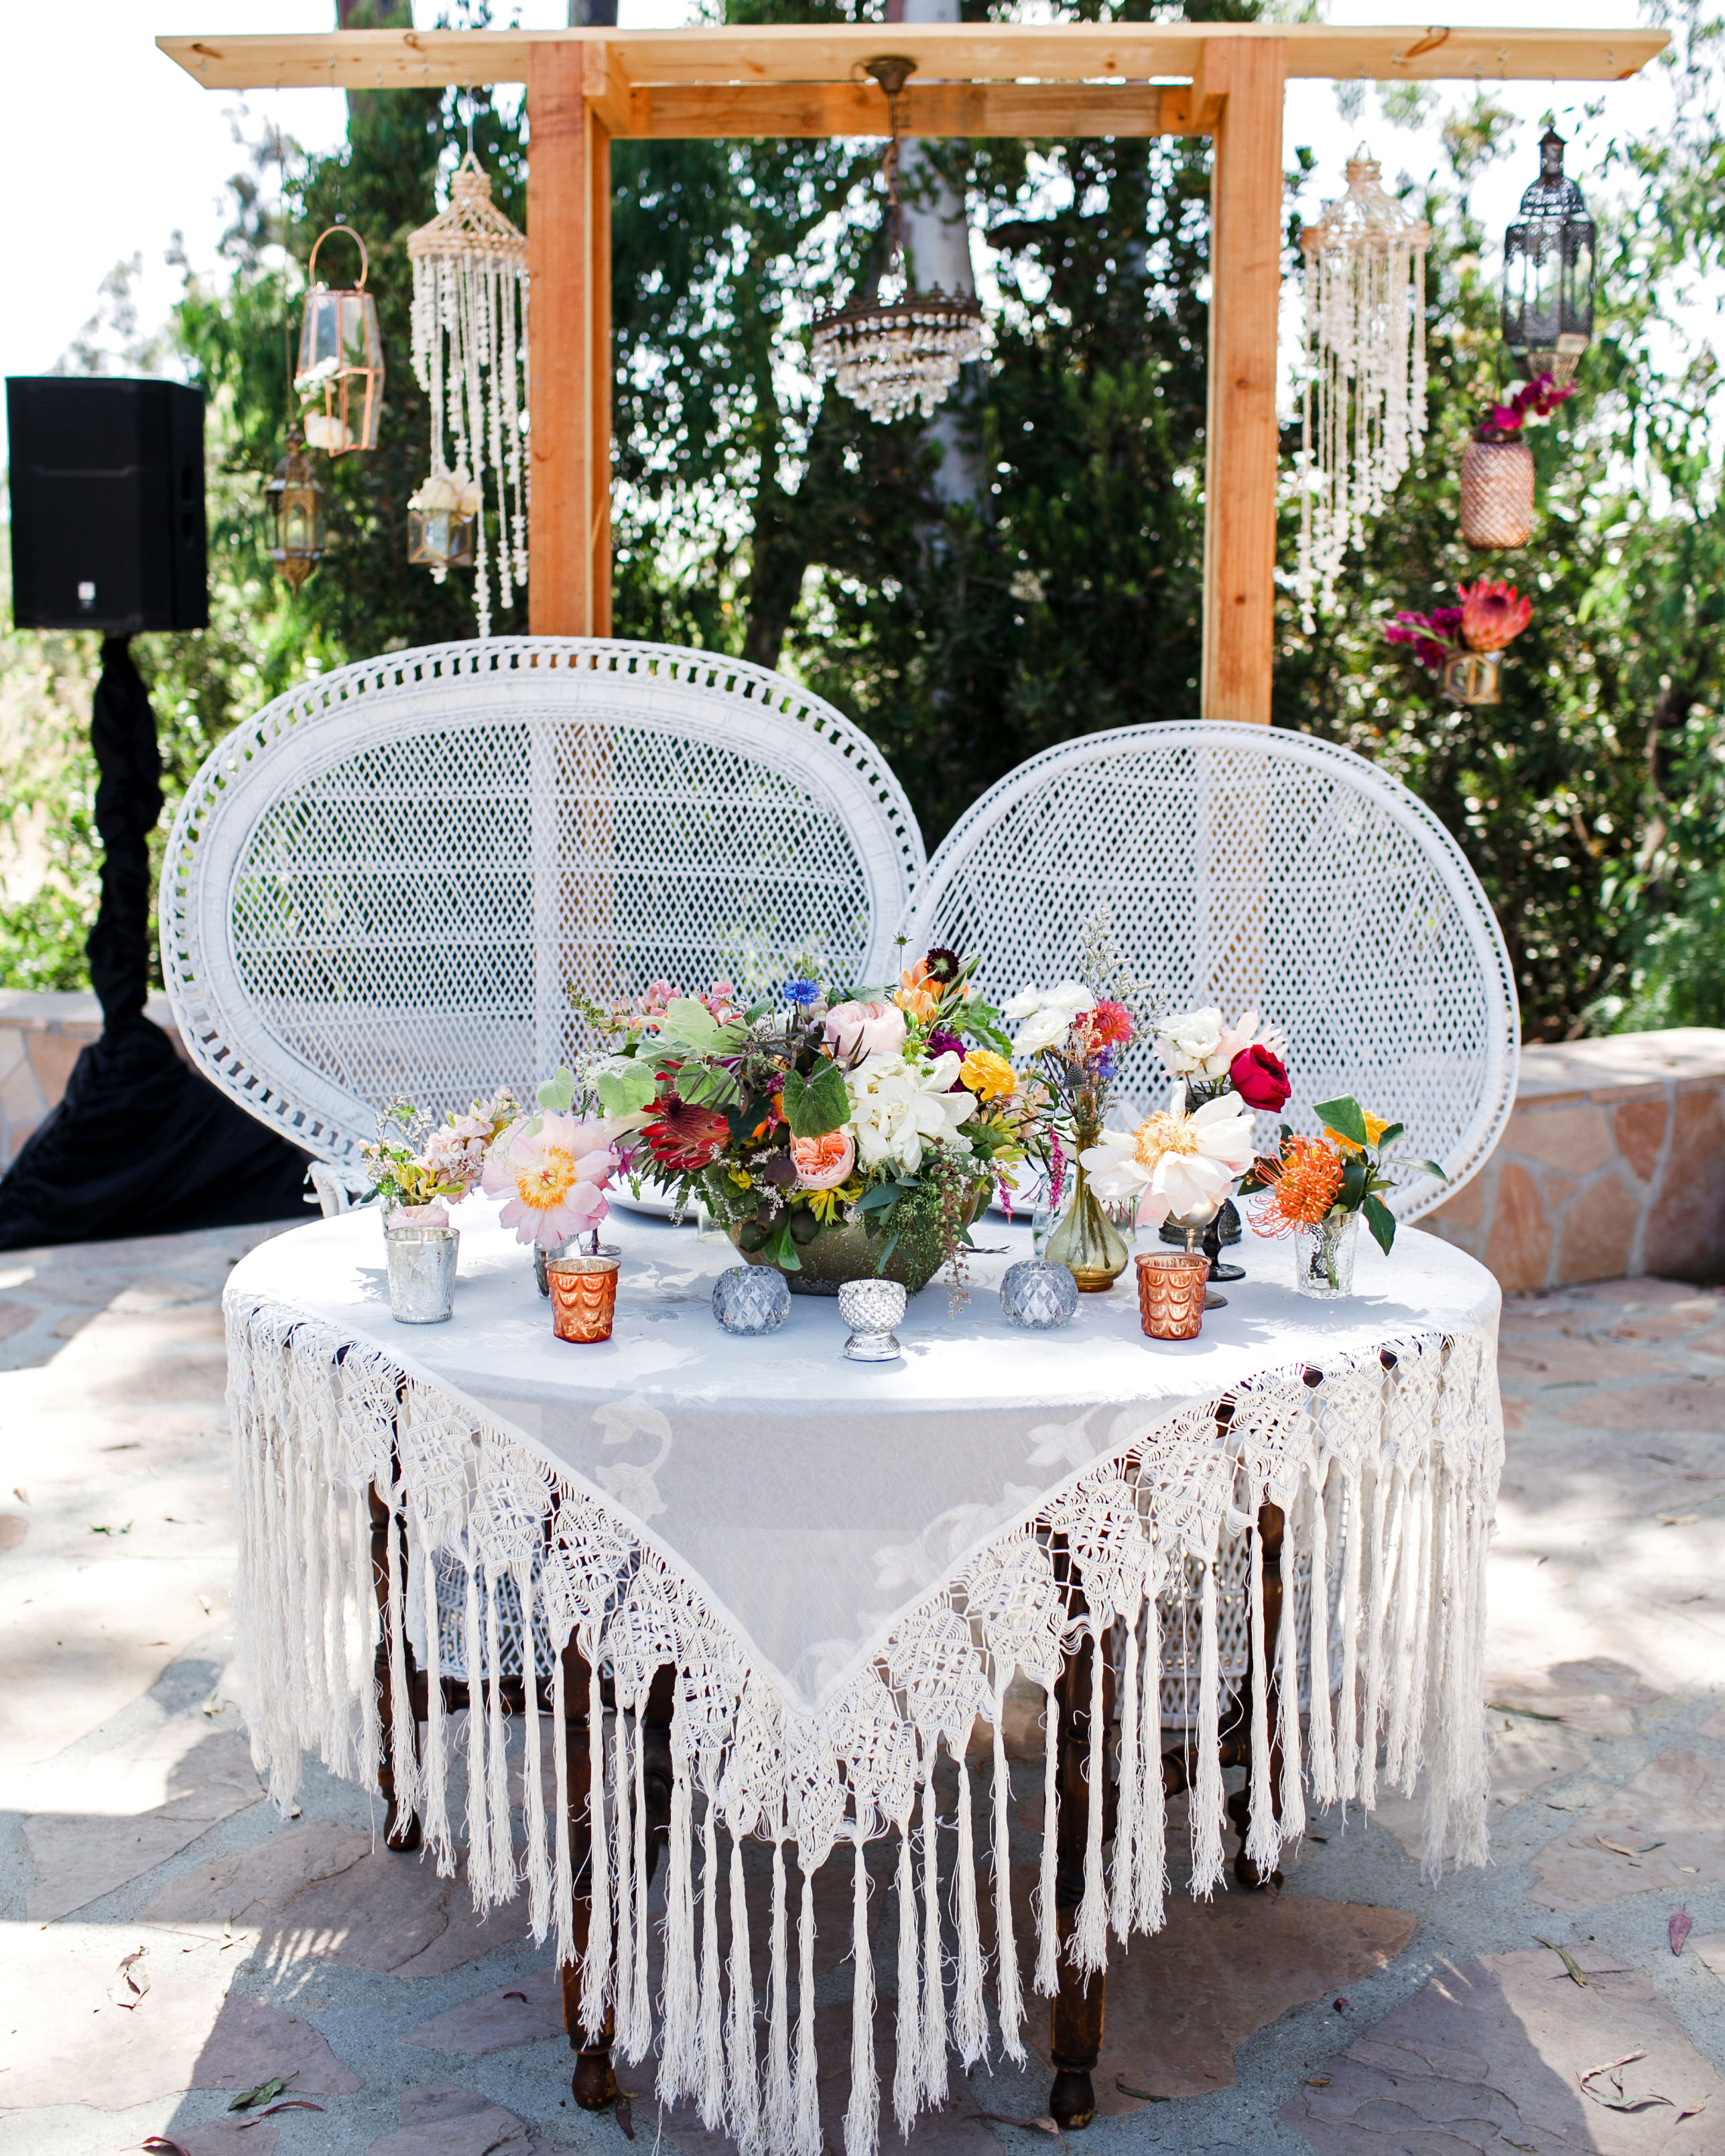 vintage lace tablecloth peacock chairs